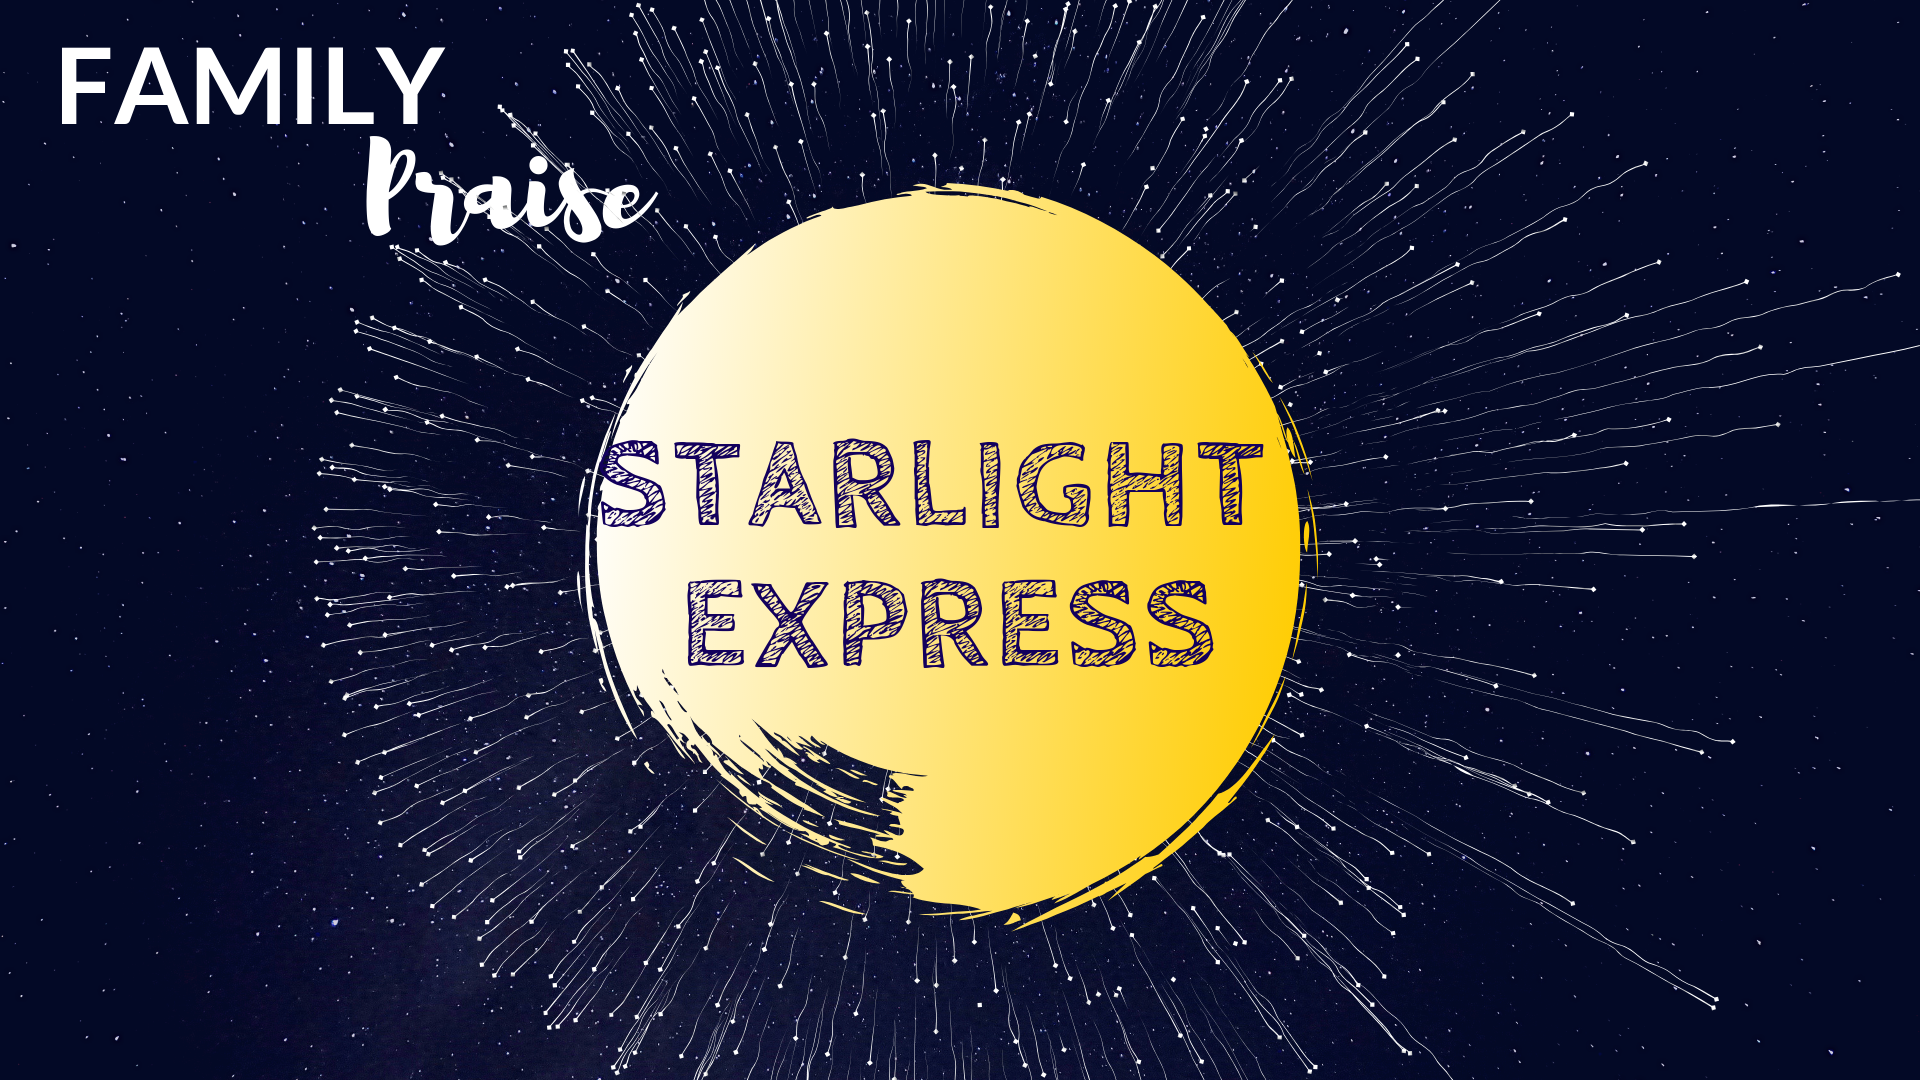 Facebook event - Starlight Exp